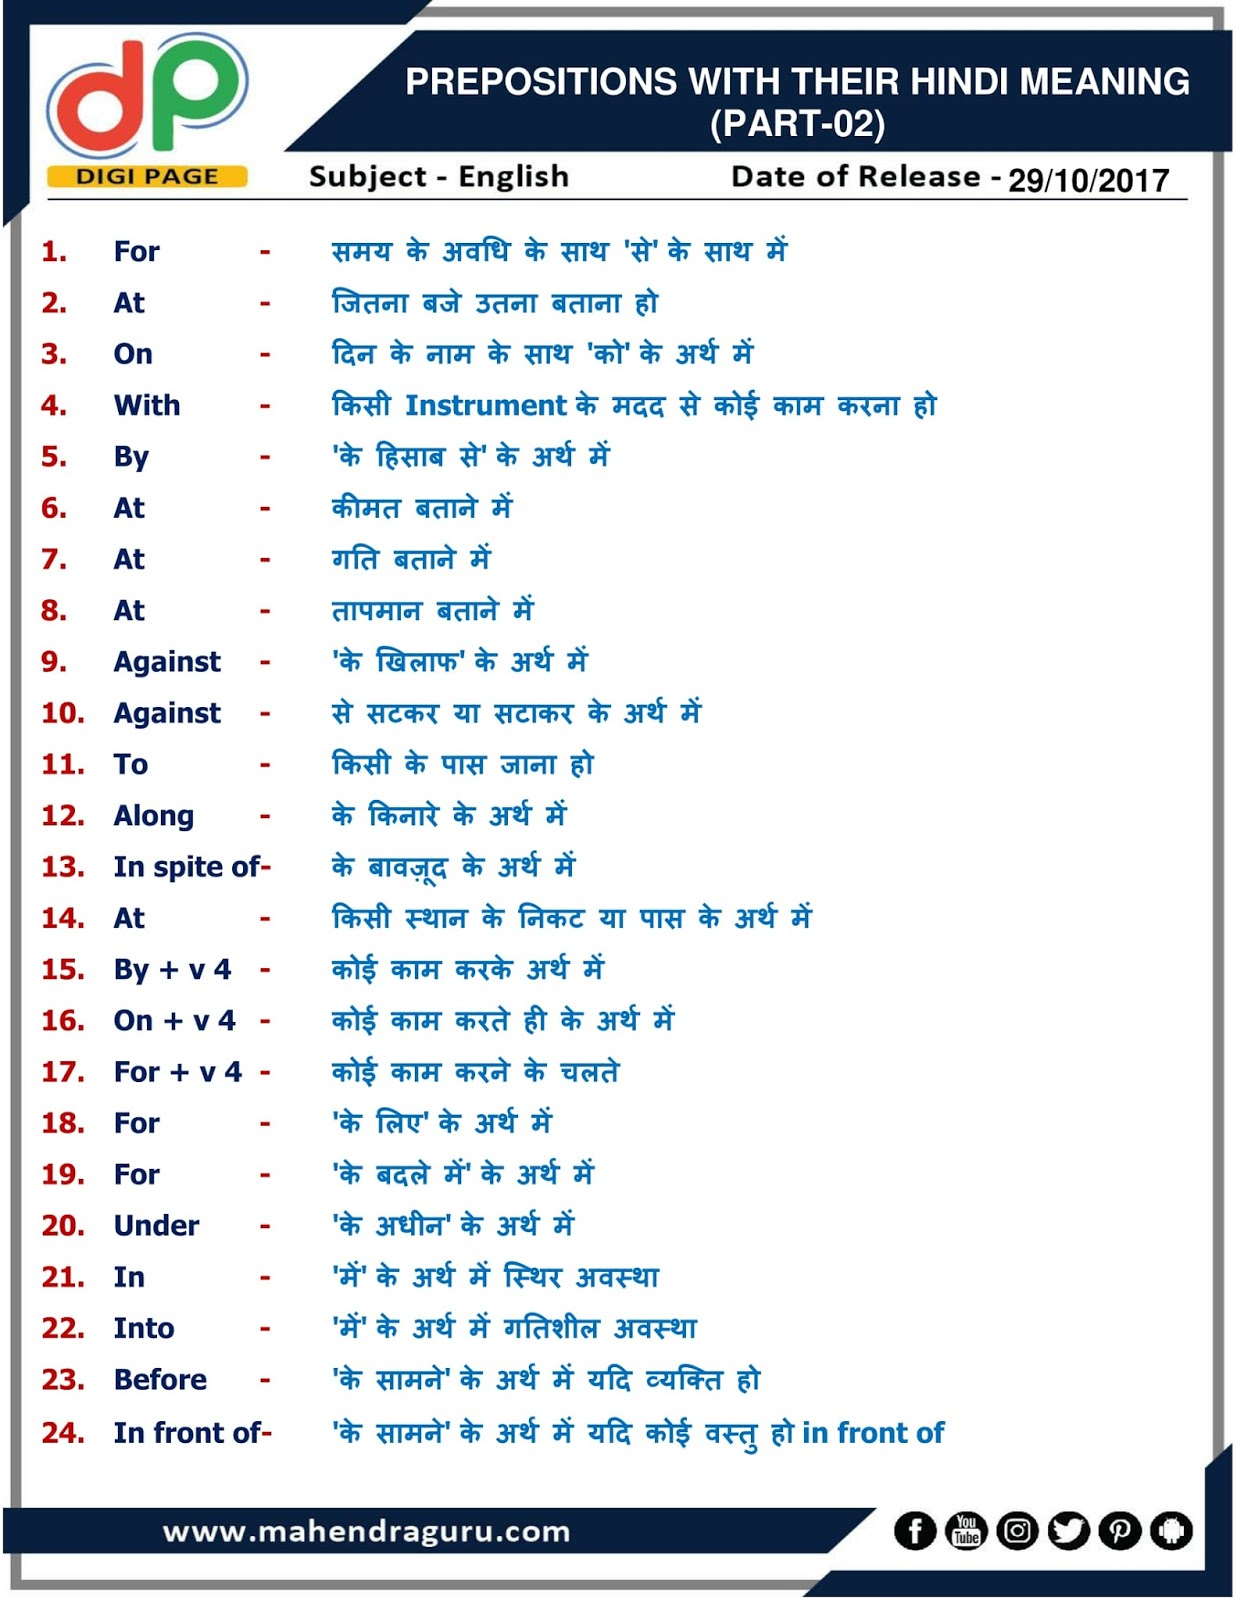 57 O MEANING IN HINDI